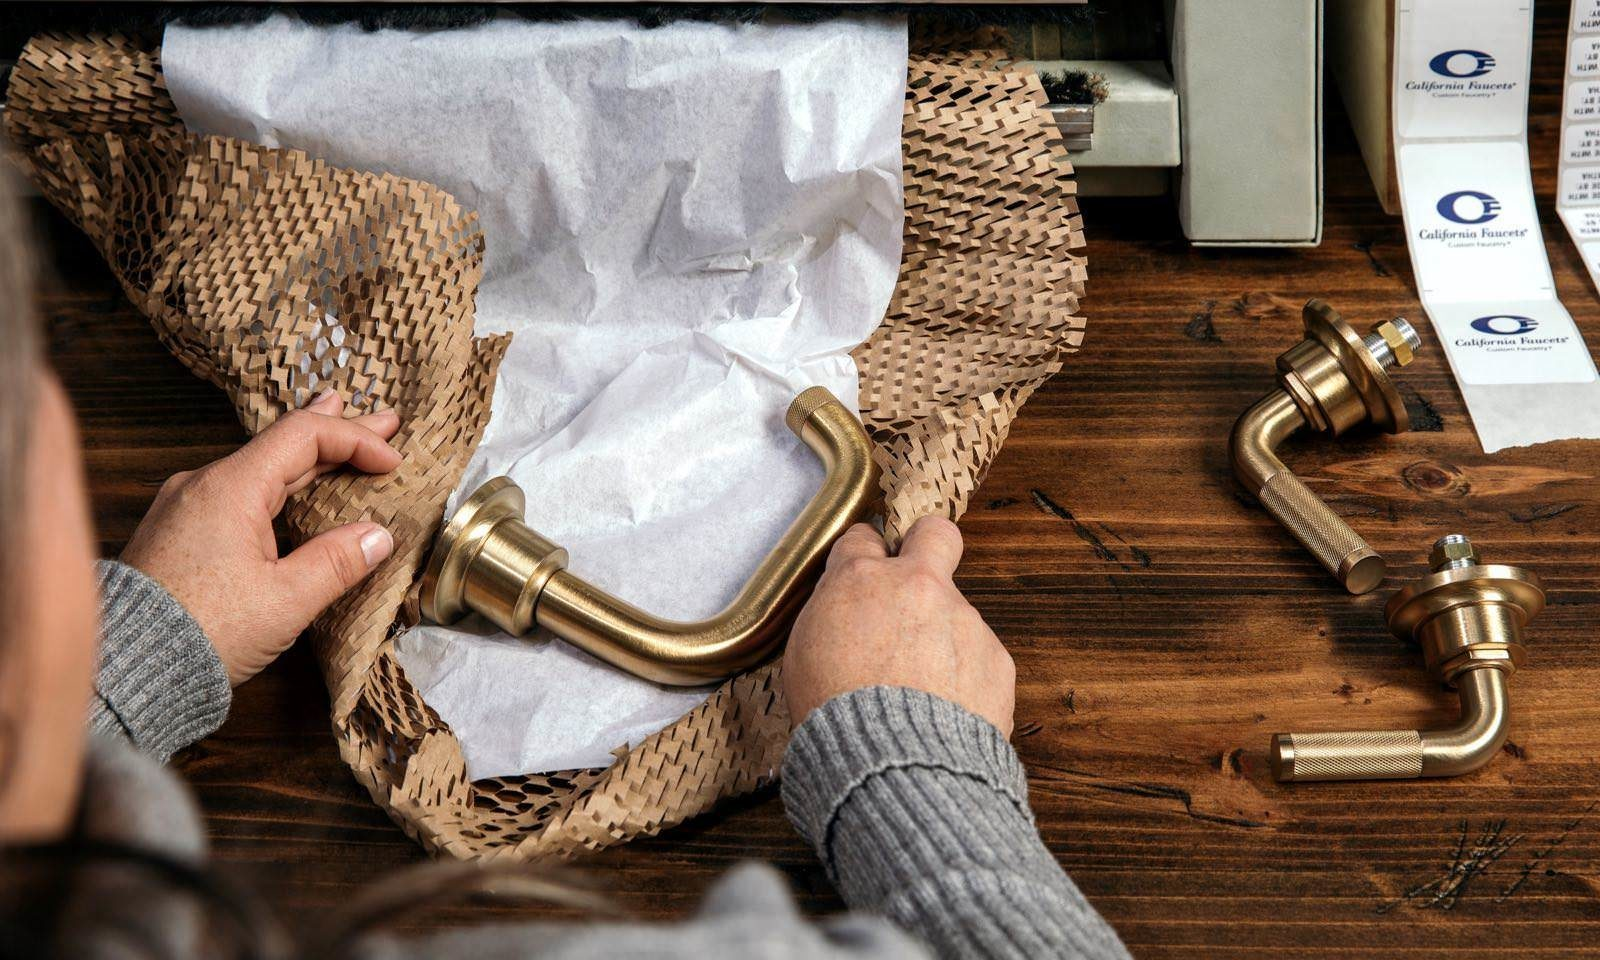 person wraps faucet in eco-friendly recyclable packaging